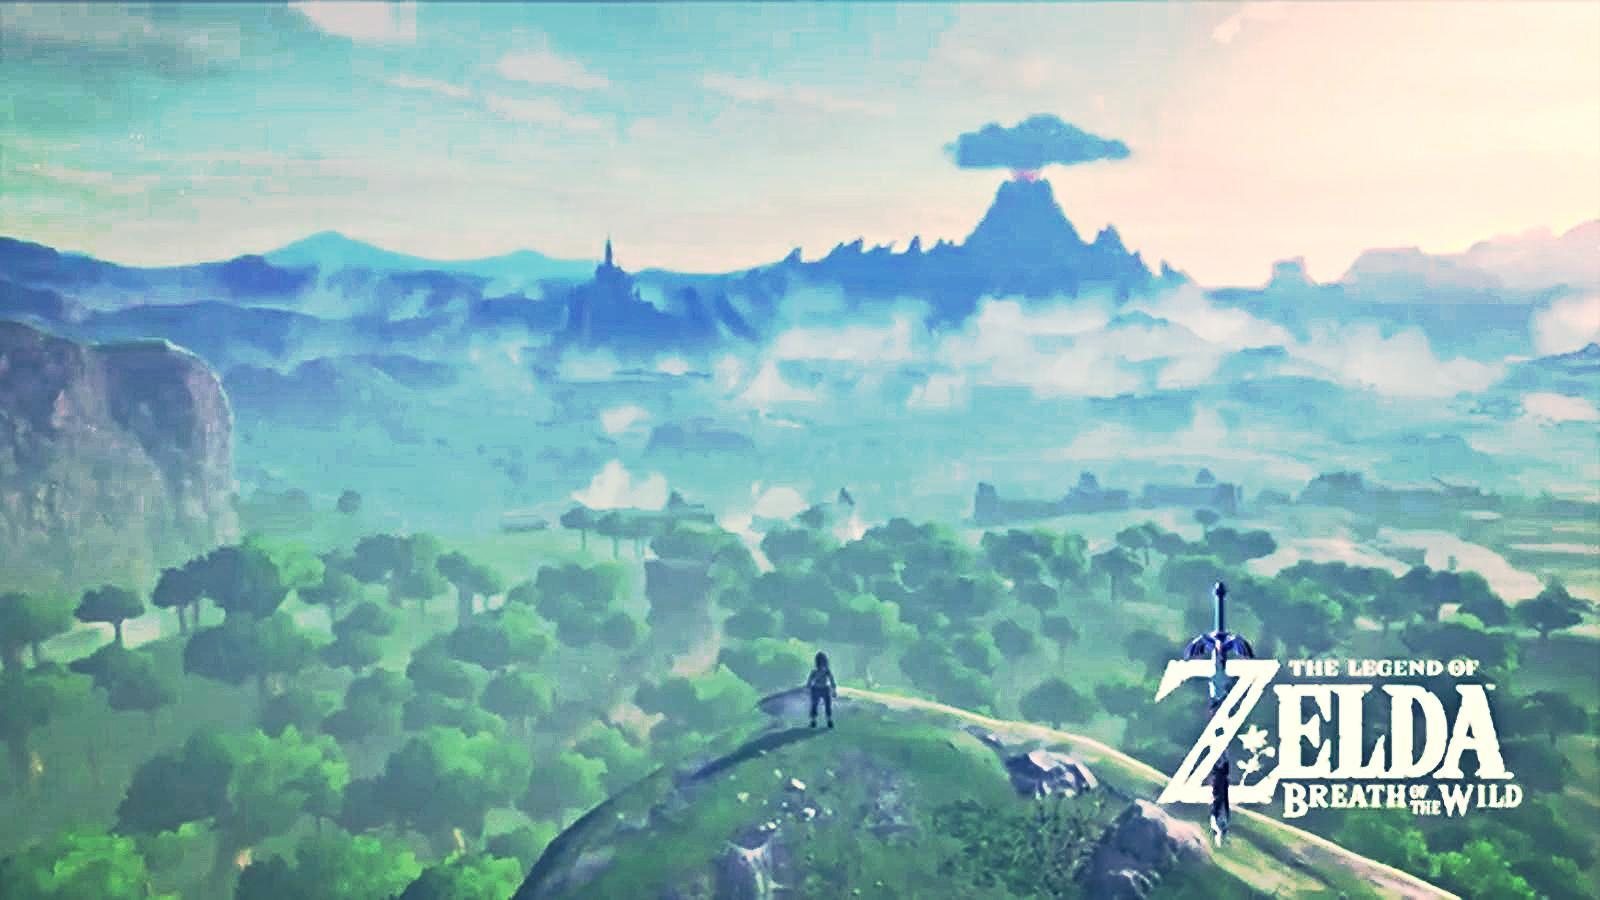 Zelda Breath Of The Wild Wallpaper 4k: Zelda: Breath Of The Wild Wallpapers